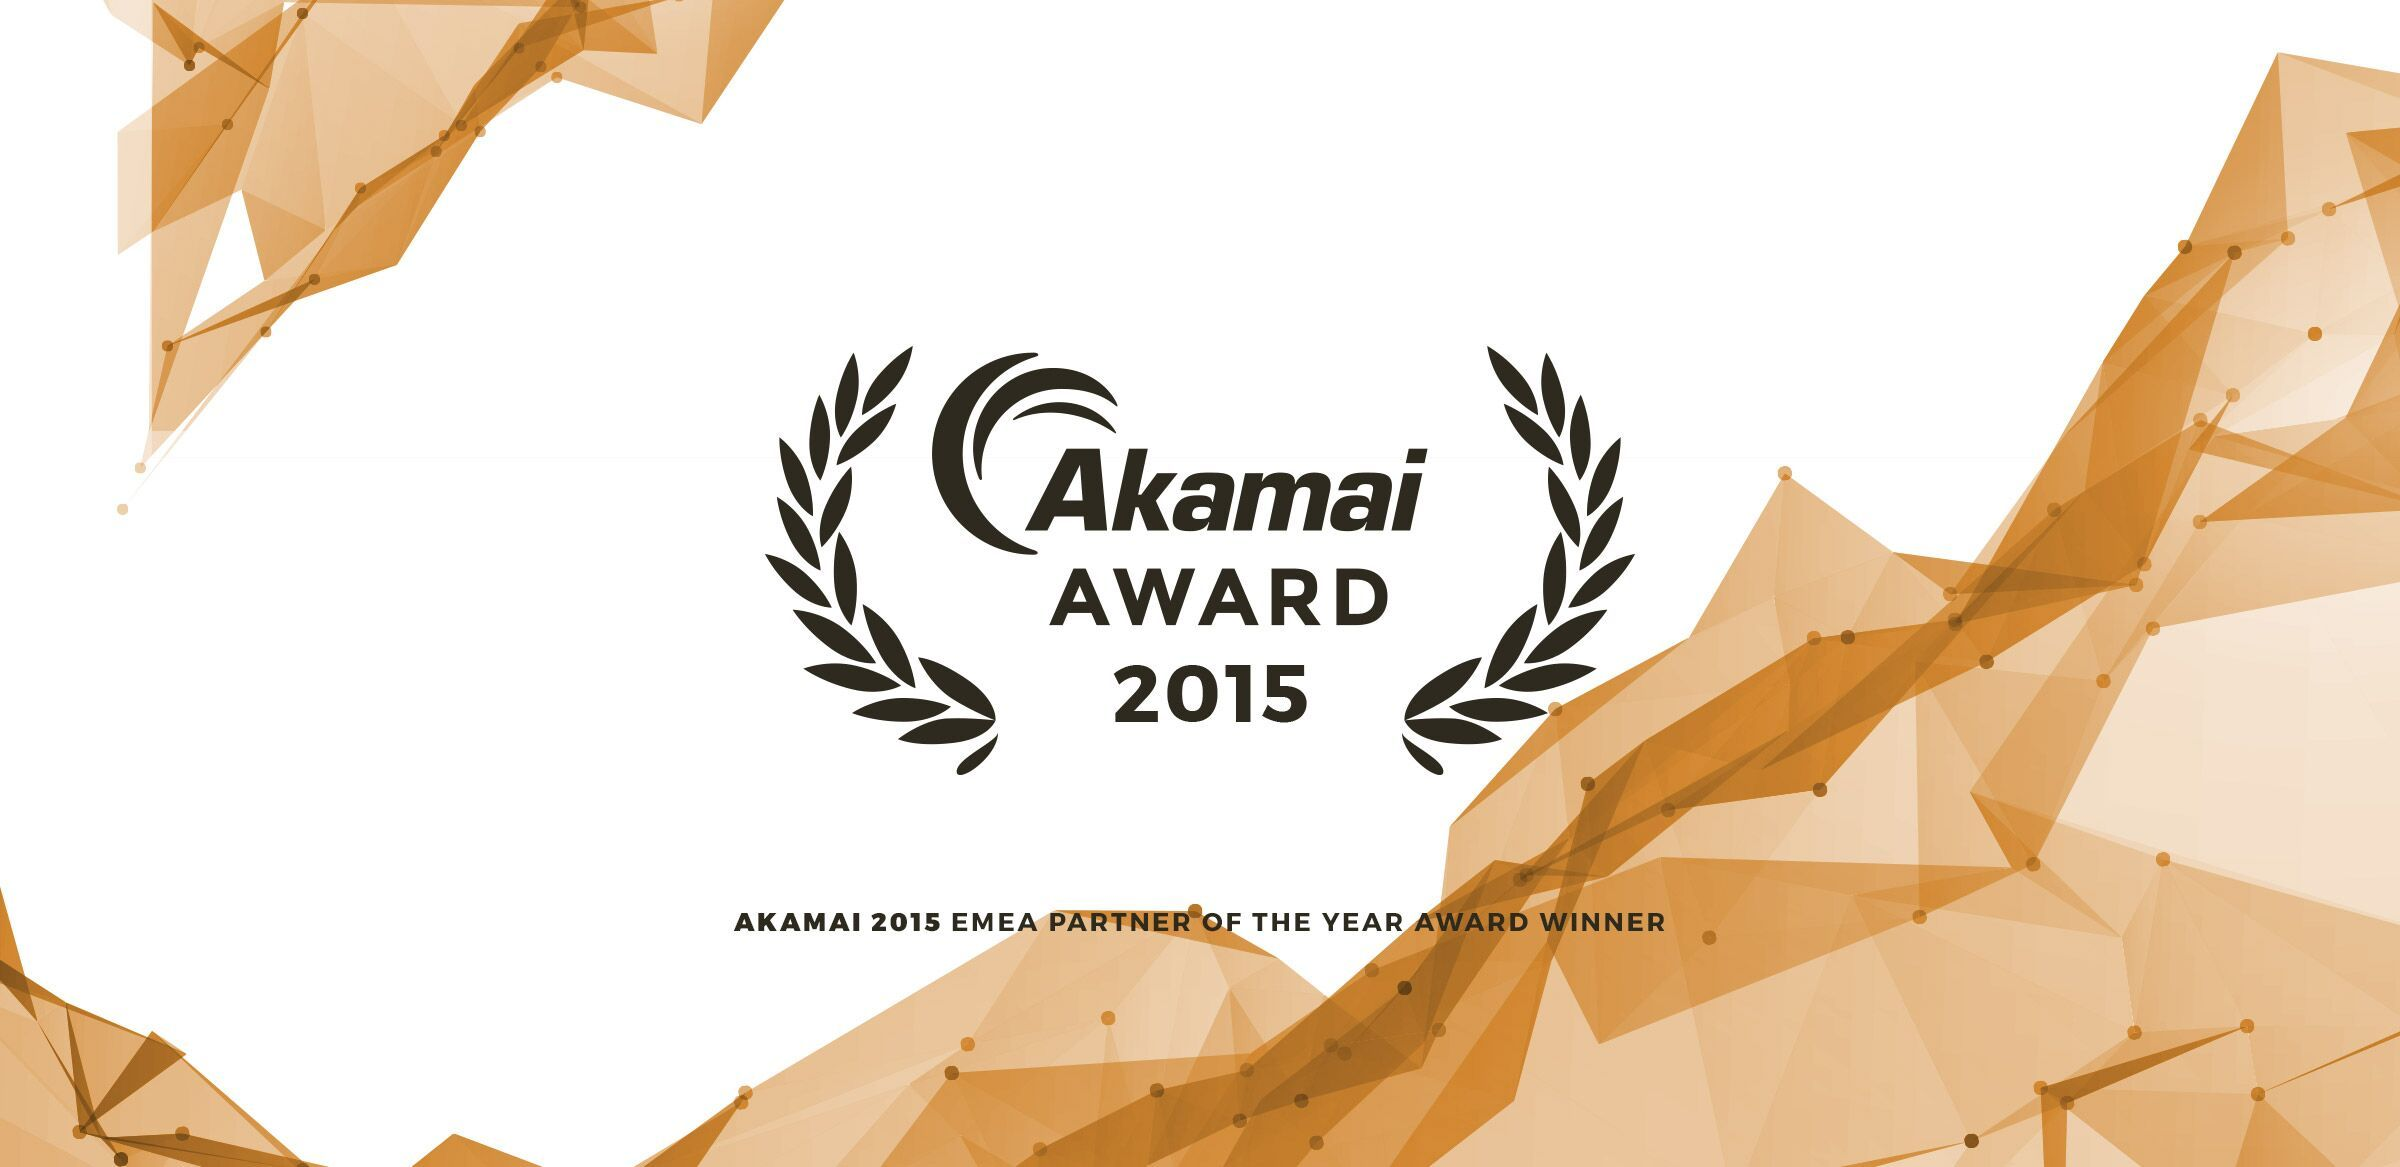 arturai_akamai__2015_emea_partner_of_the_year_award__winner.jpg